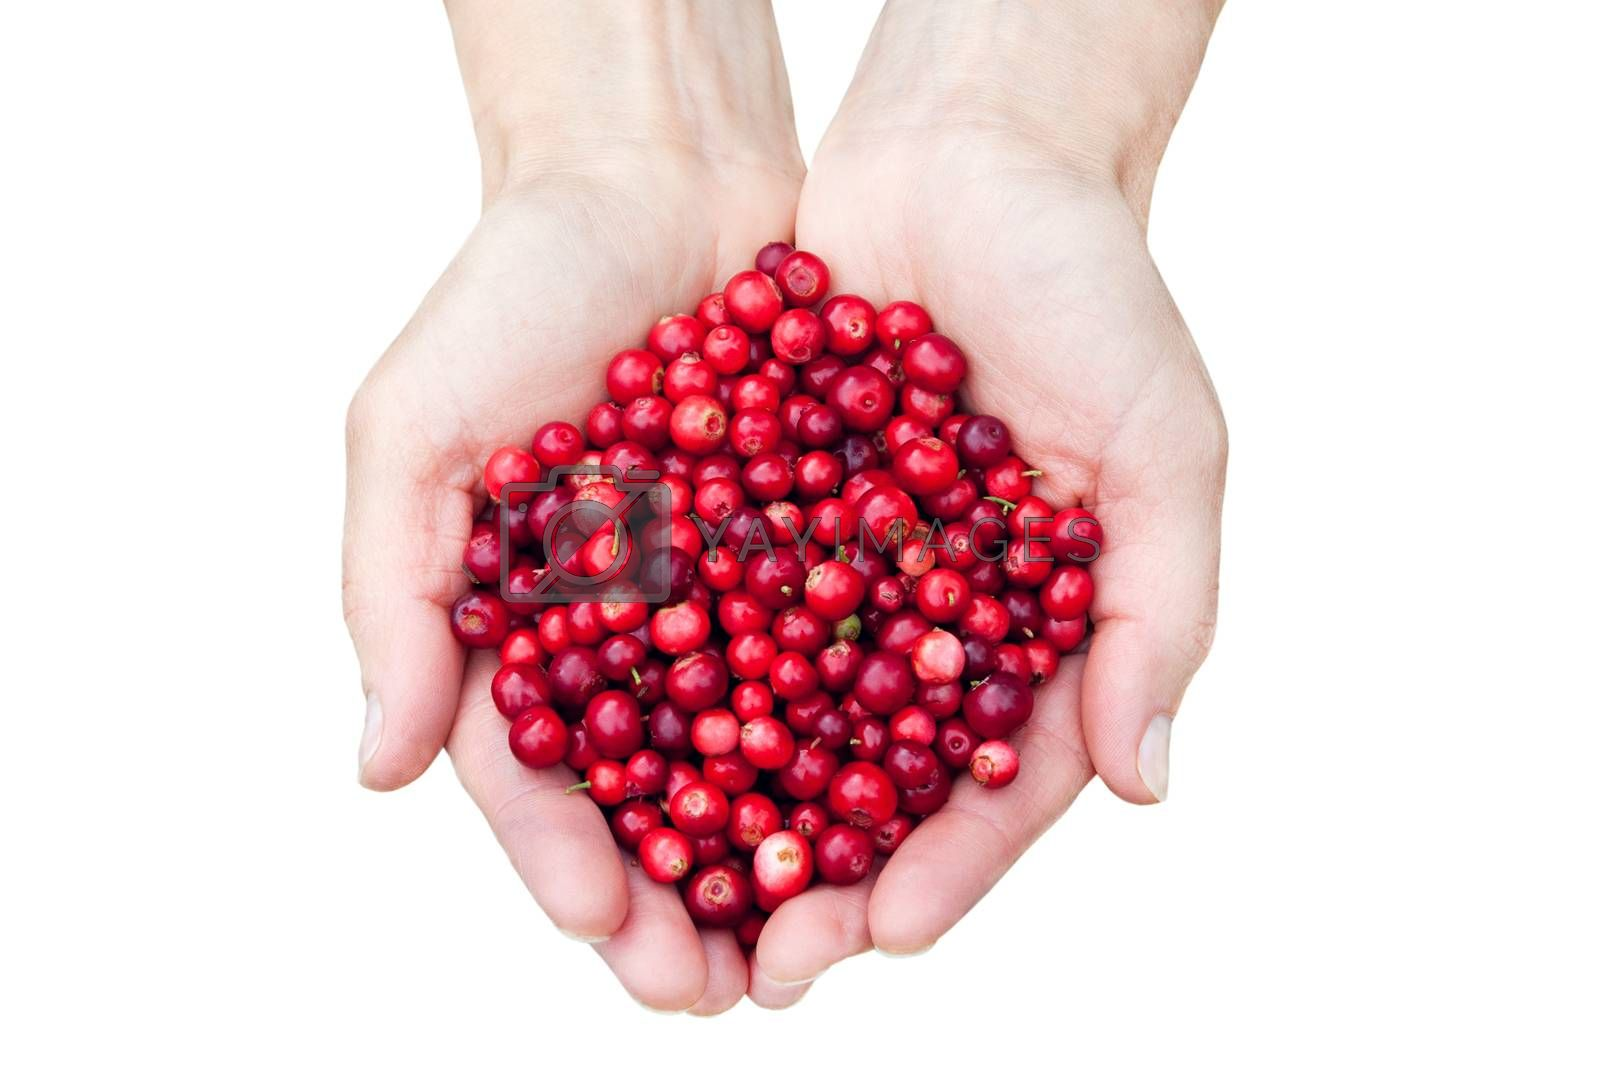 Womans hands holding fresh red lingonberries isolated on white background